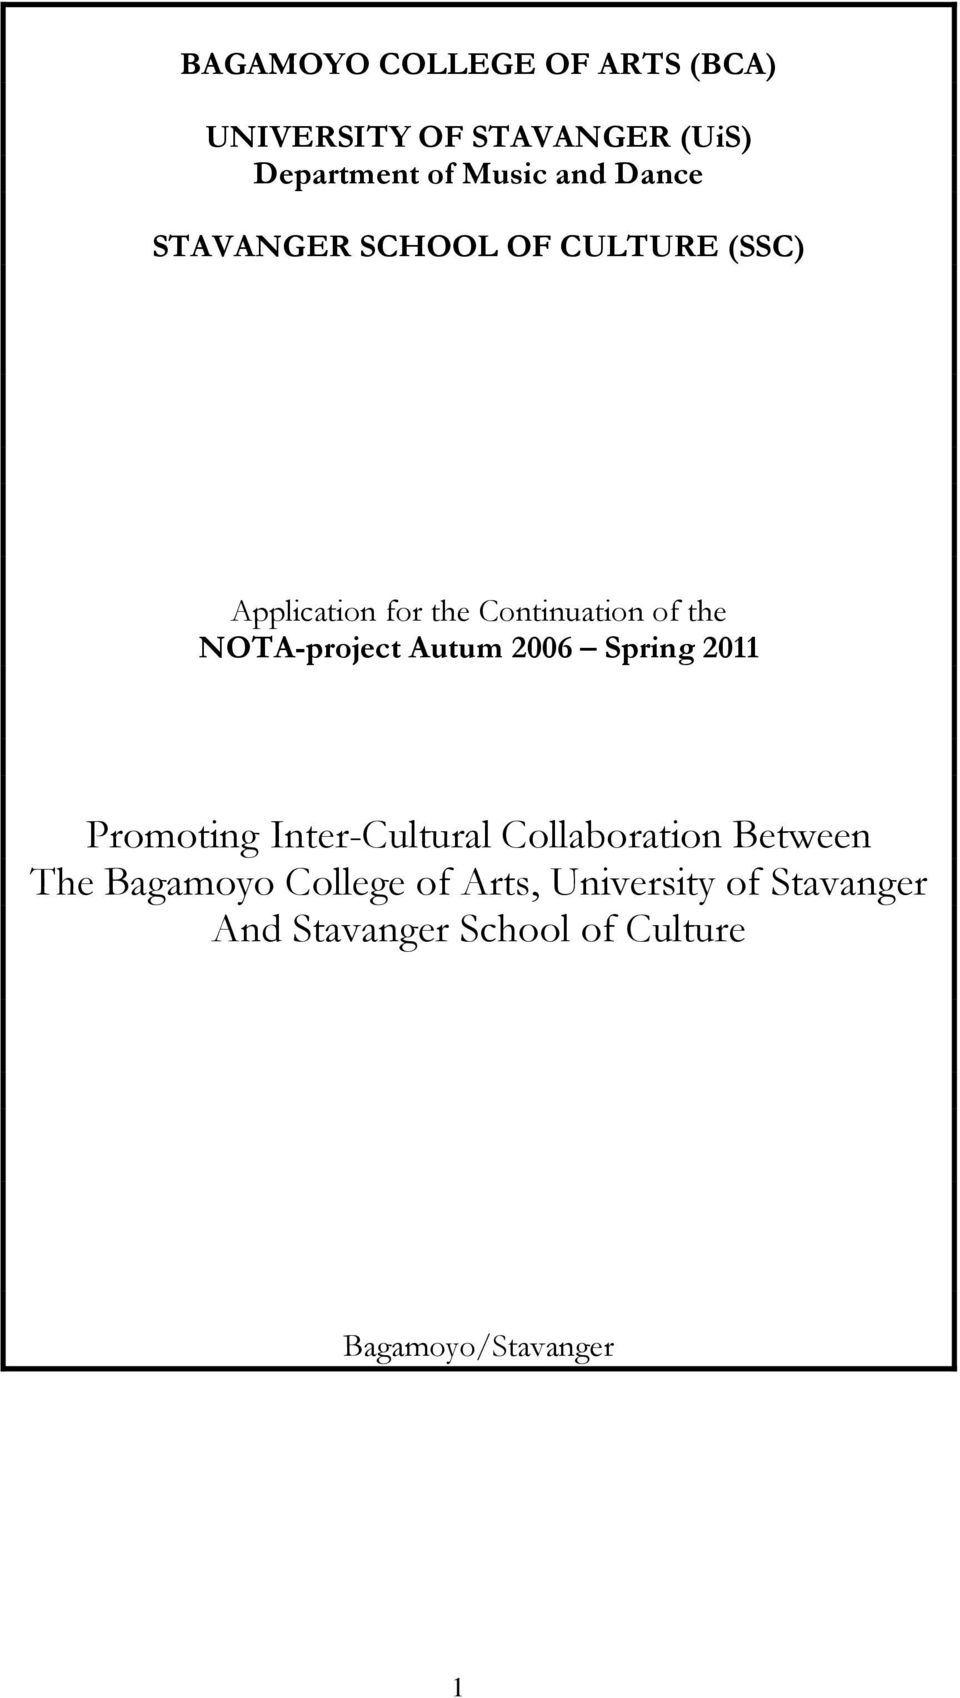 NOTA-project Autum 2006 Spring 2011 Promoting Inter-Cultural Collaboration Between The